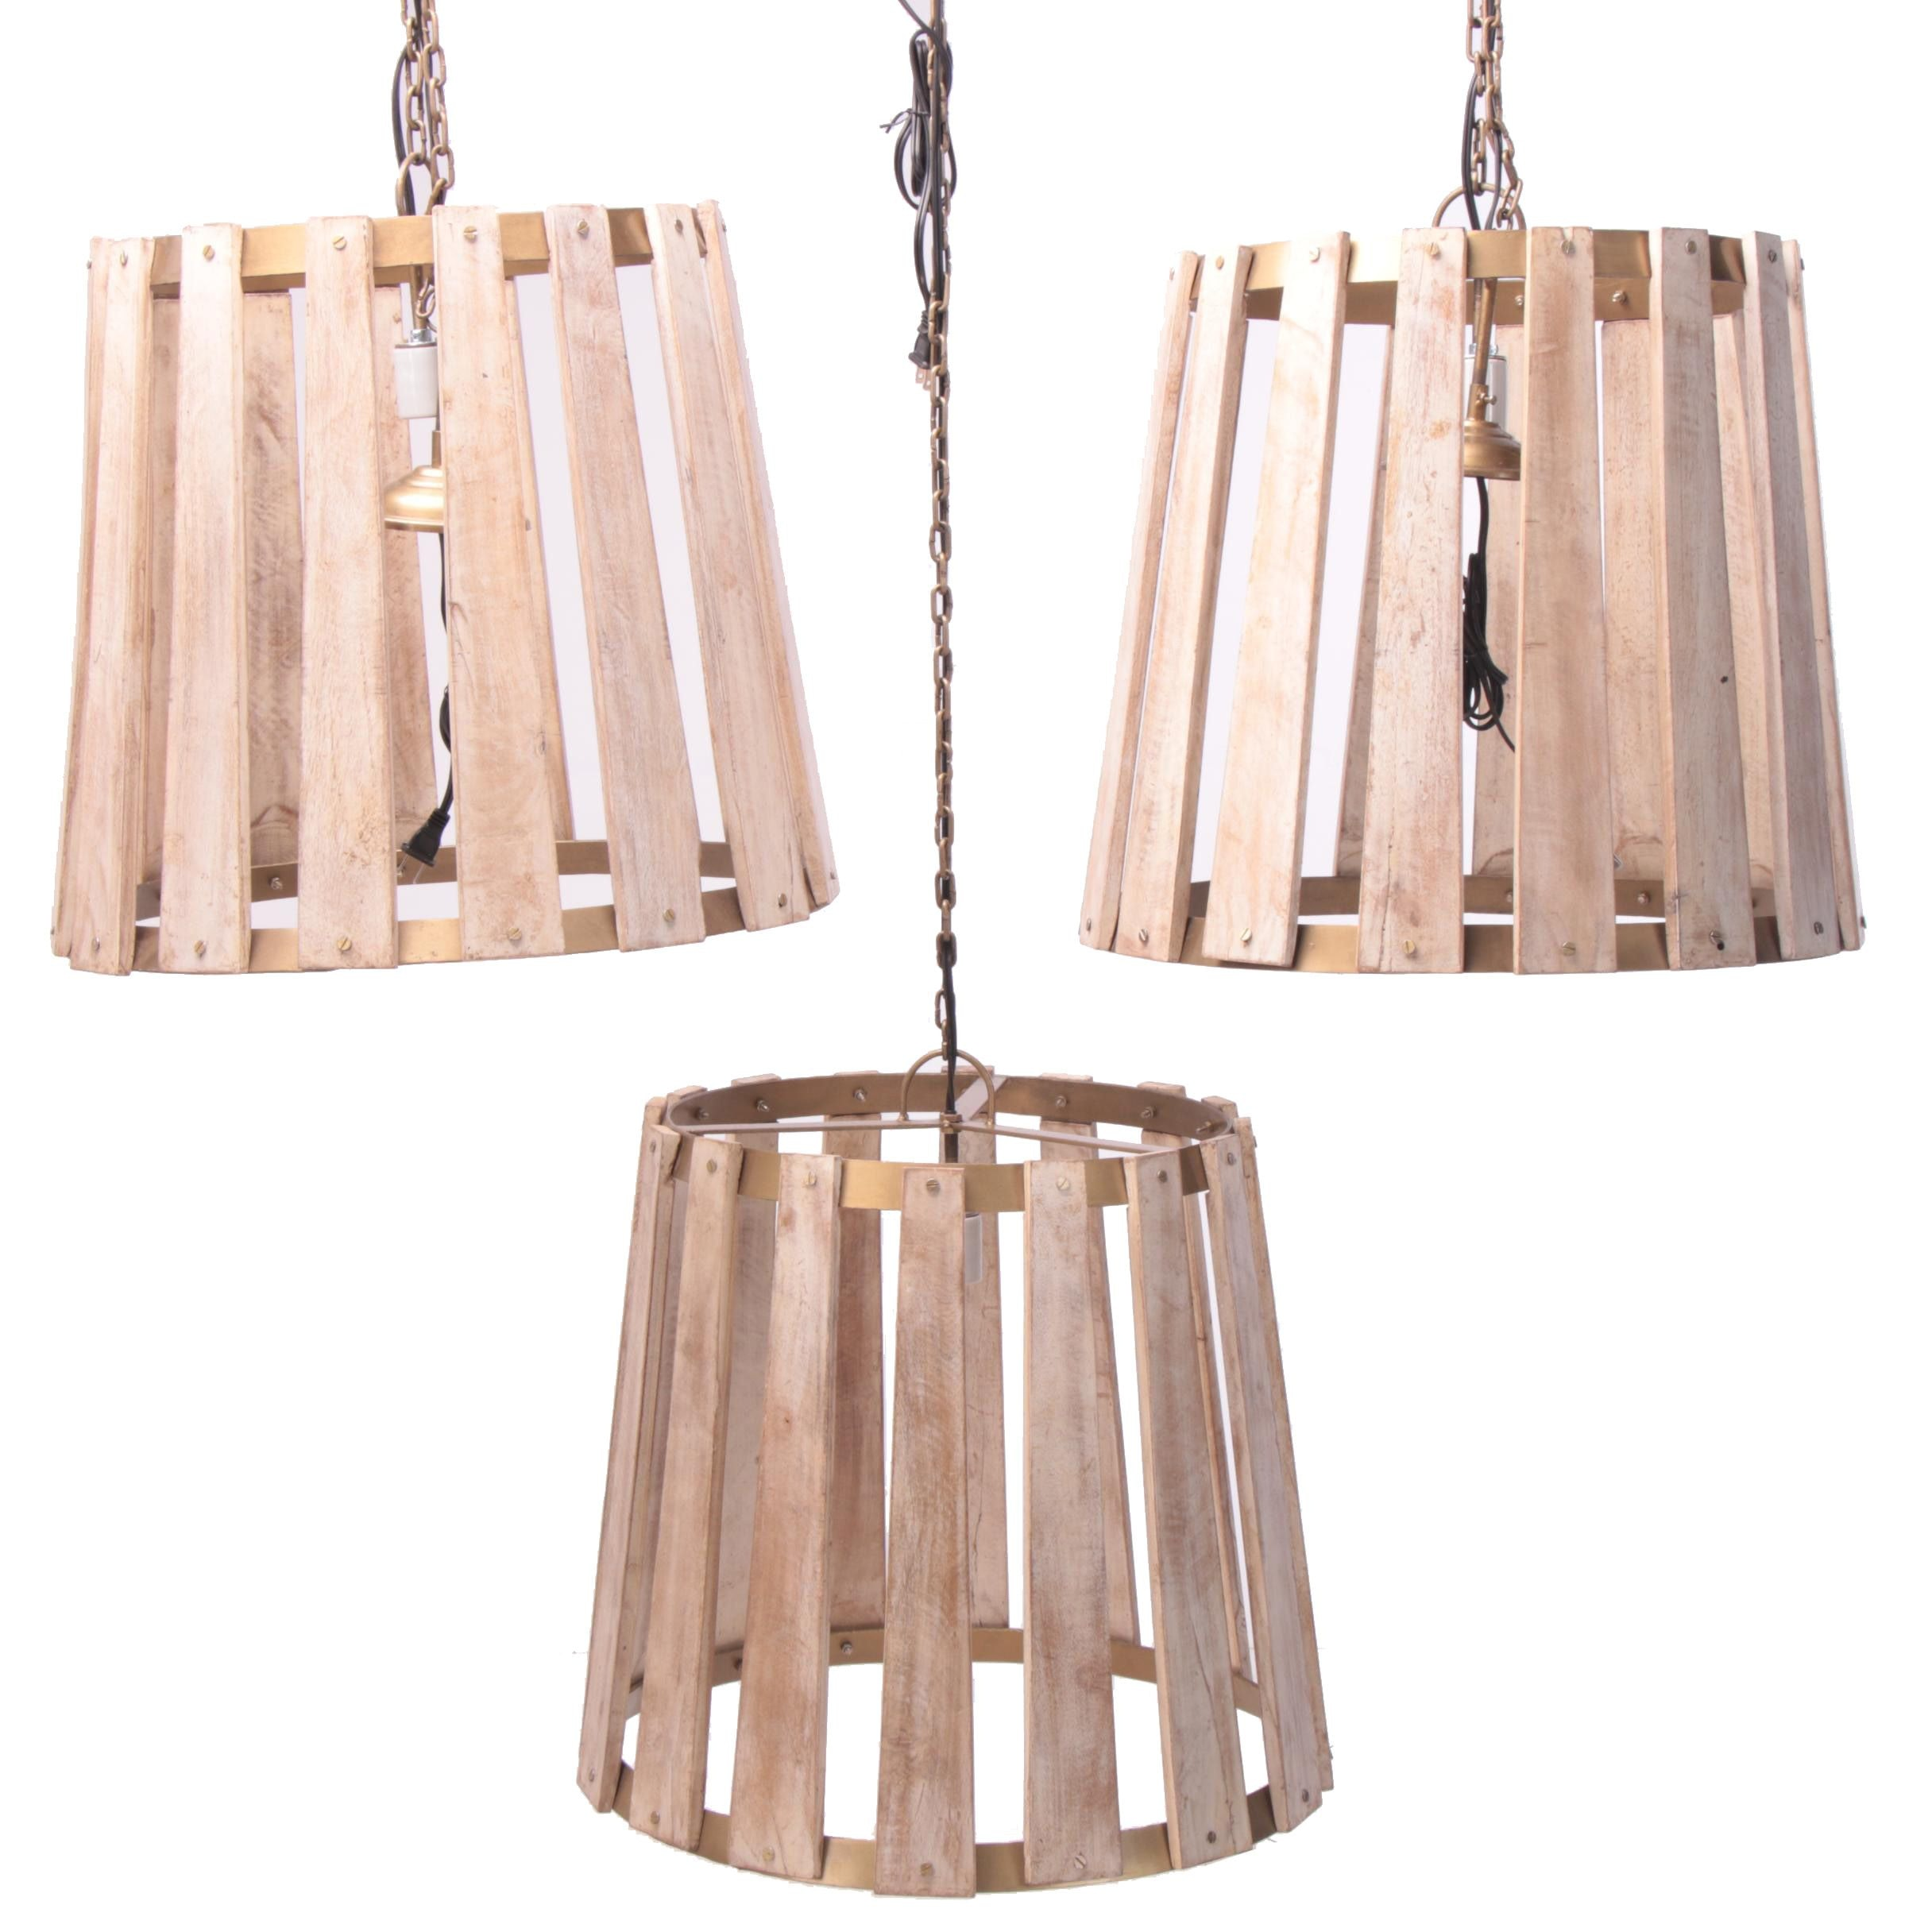 "Set of ""Napa"" Oak Barrel Stave Pendants"